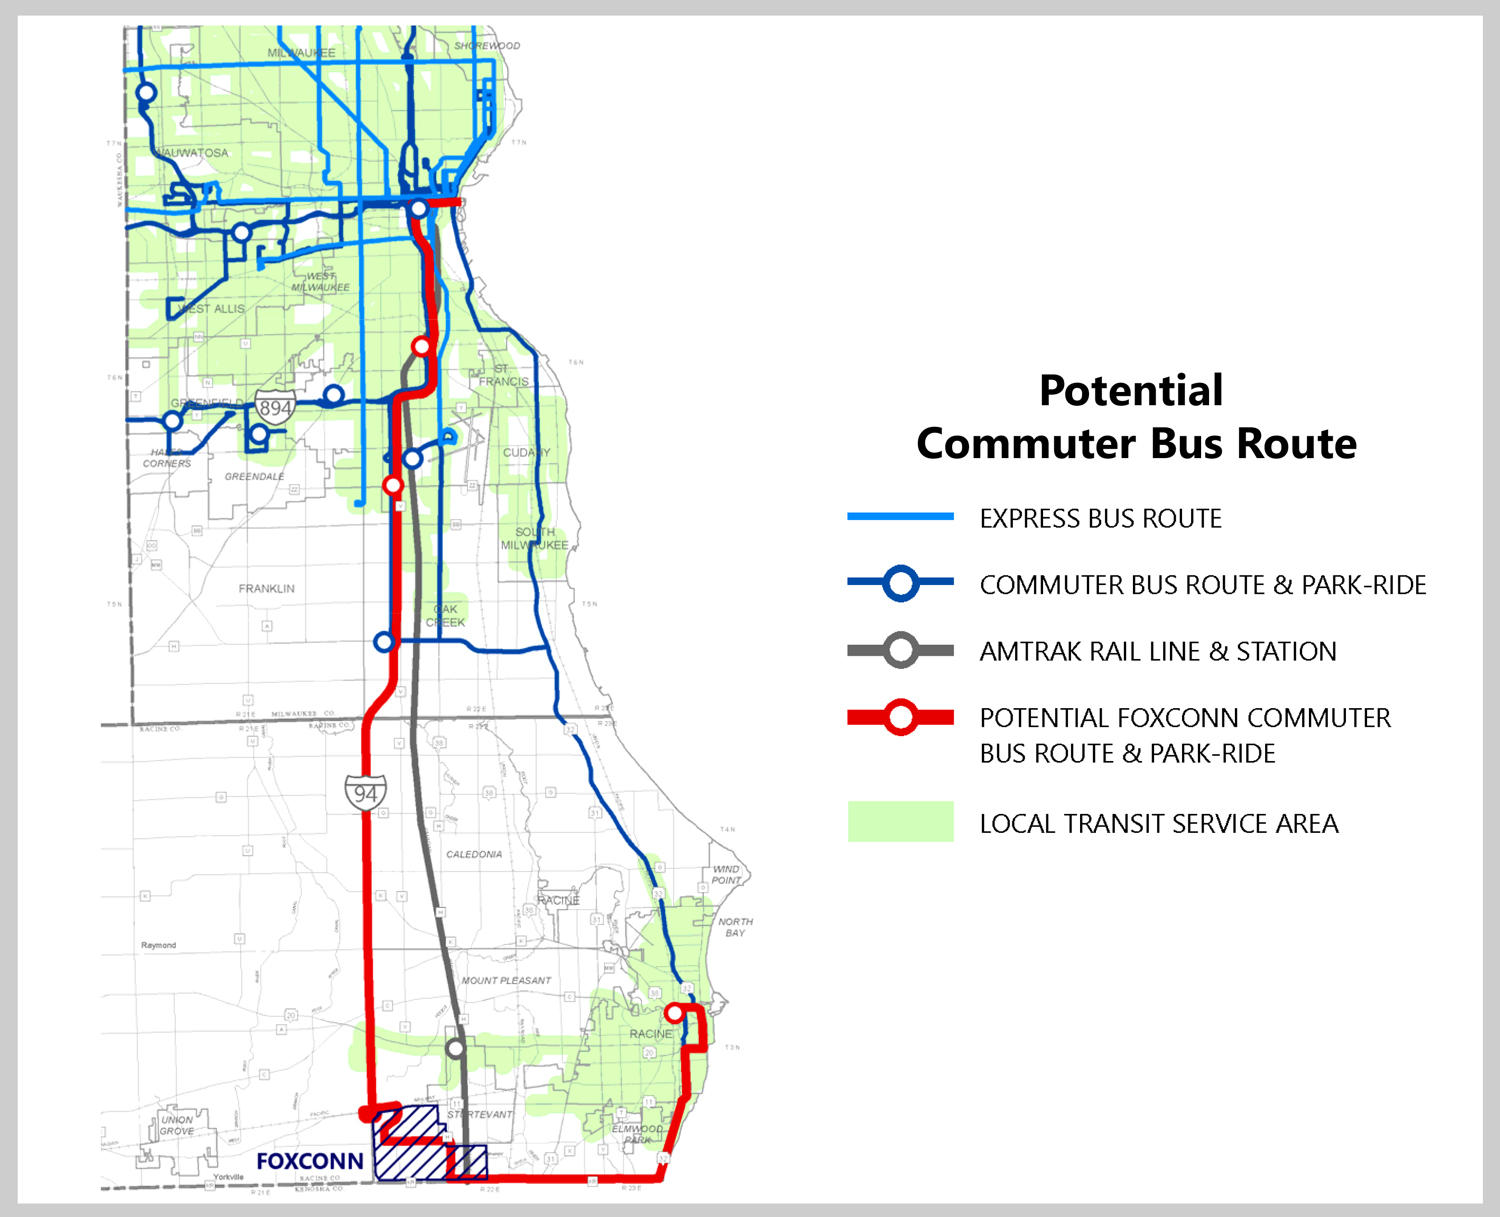 Planning Commission Weighs Transportation Options To From Foxconn